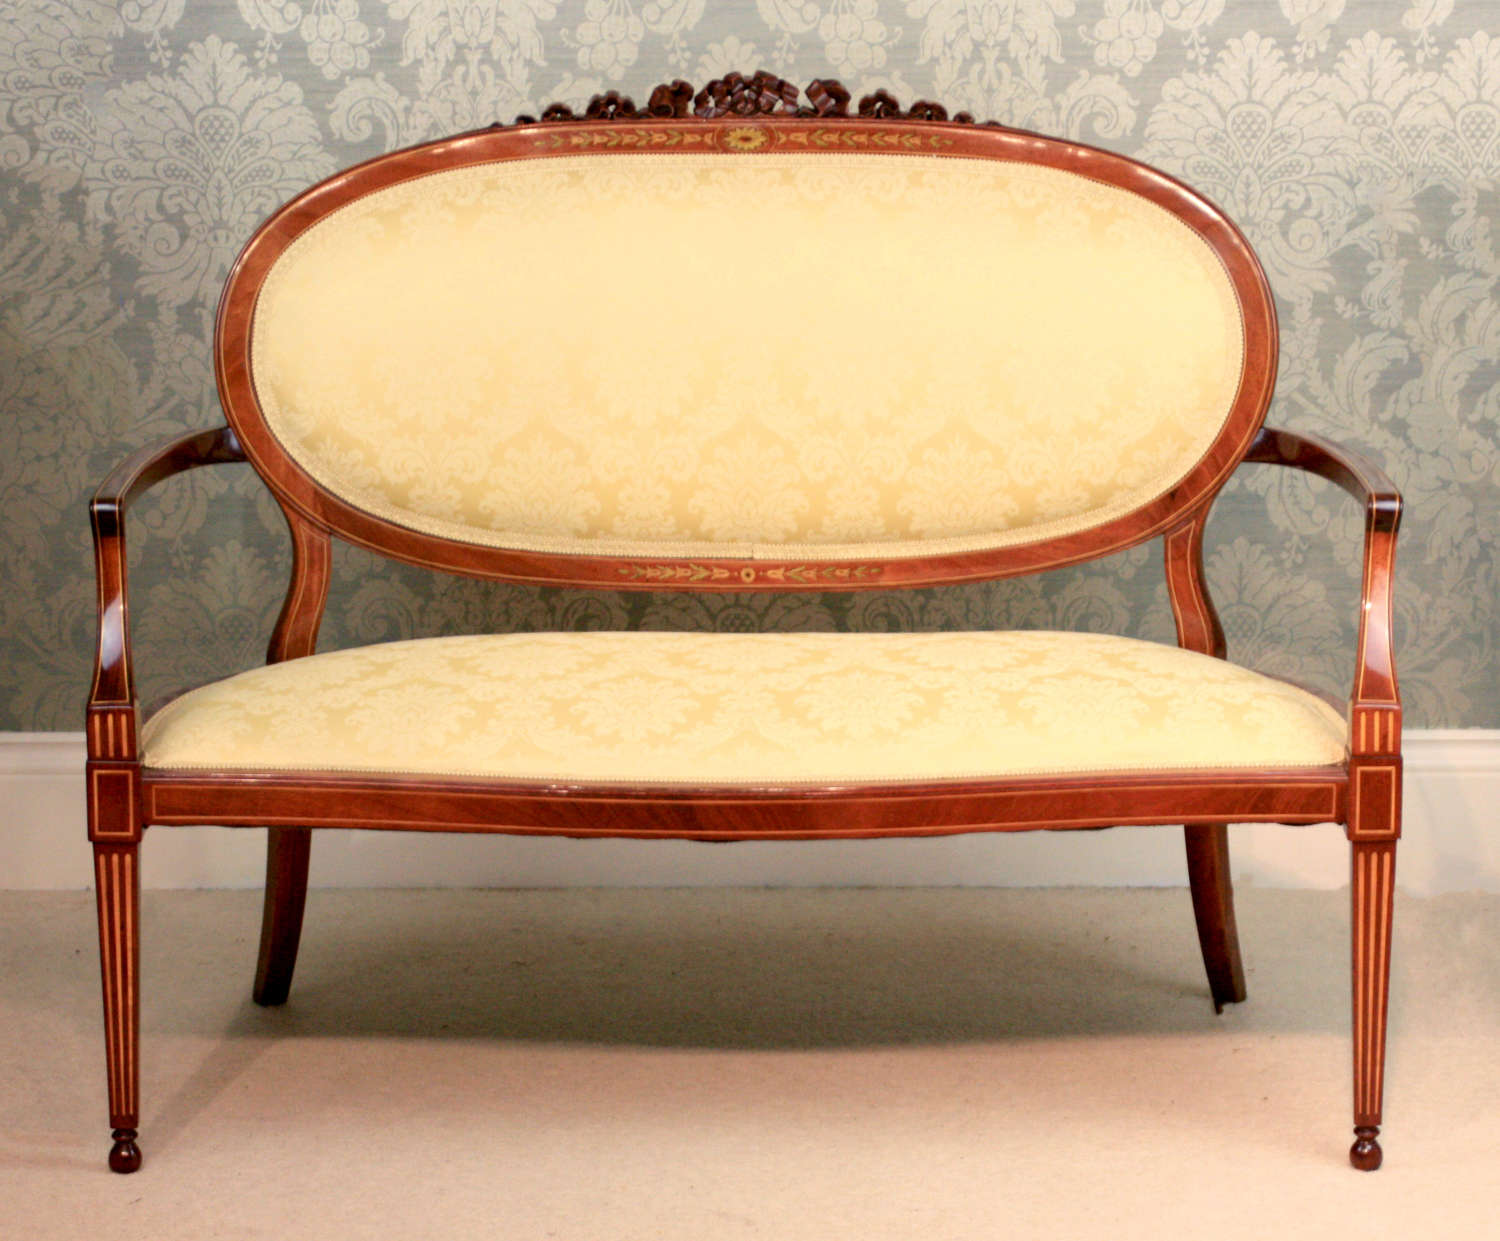 A Fine Carved Late Victorian Mahogany Inlaid Upholstered Settee